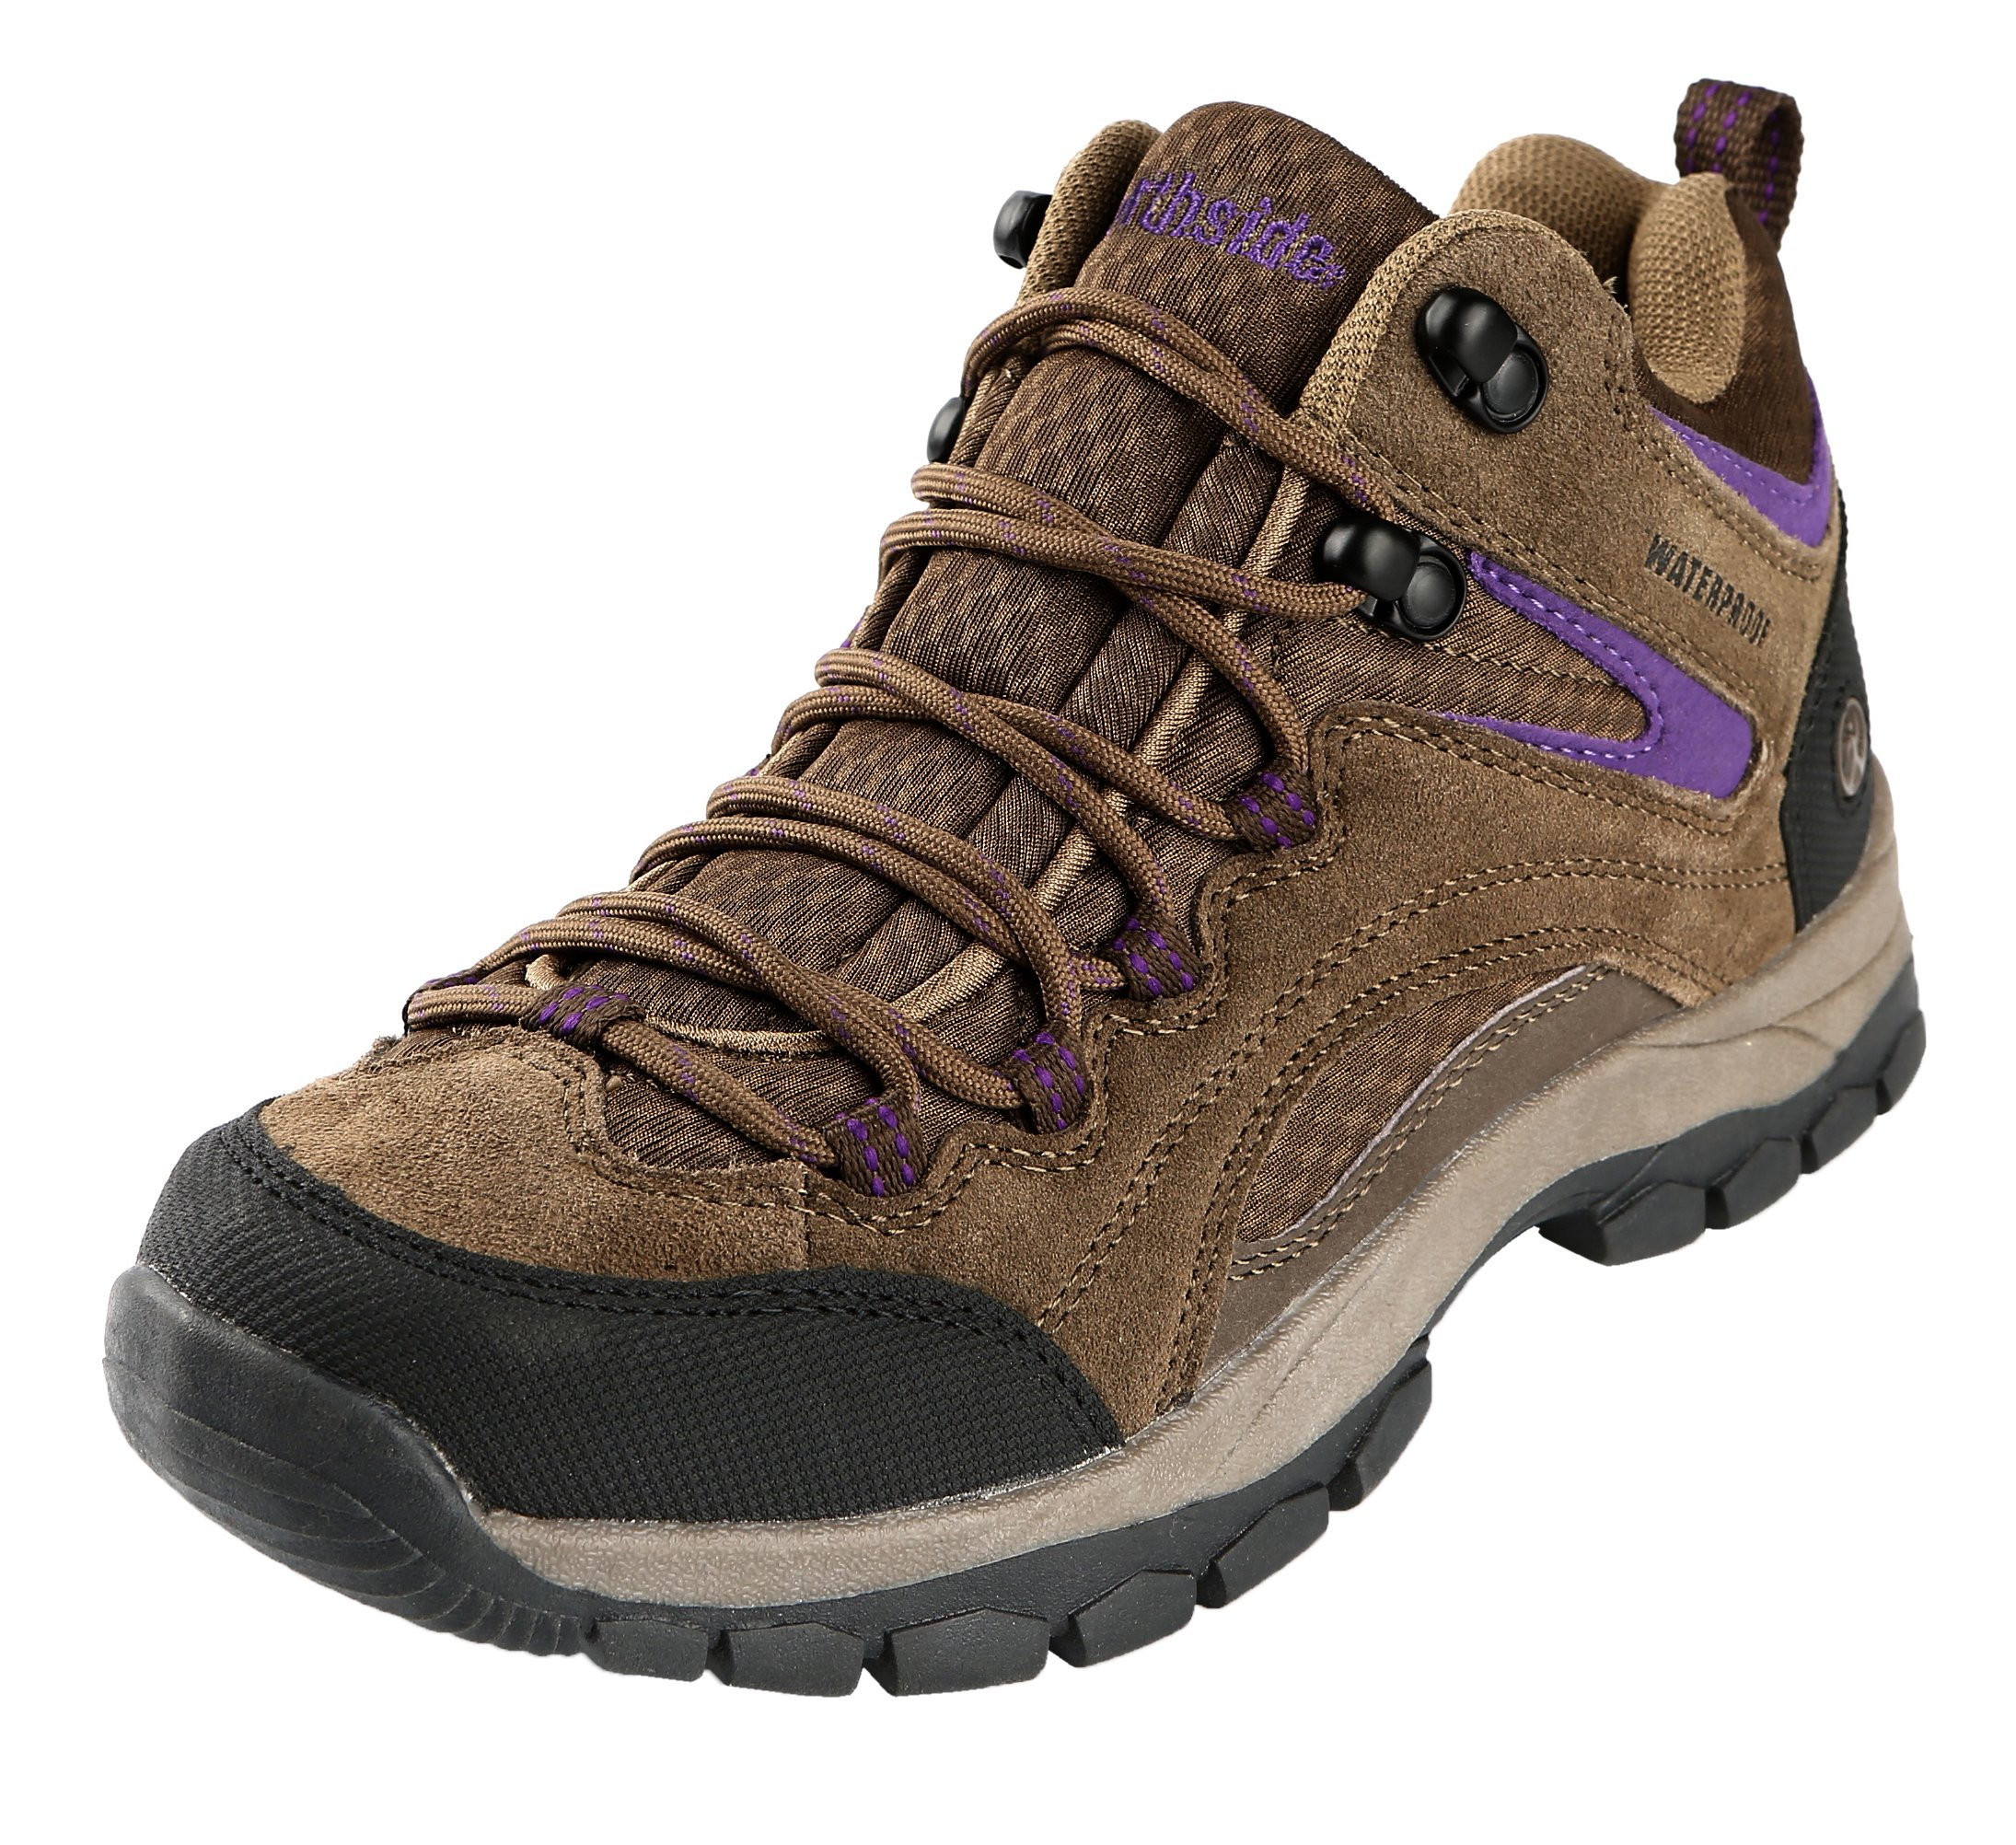 Northside Women's Pioneer Waterproof Hiking Boot, Stone/Purple, 7 M US